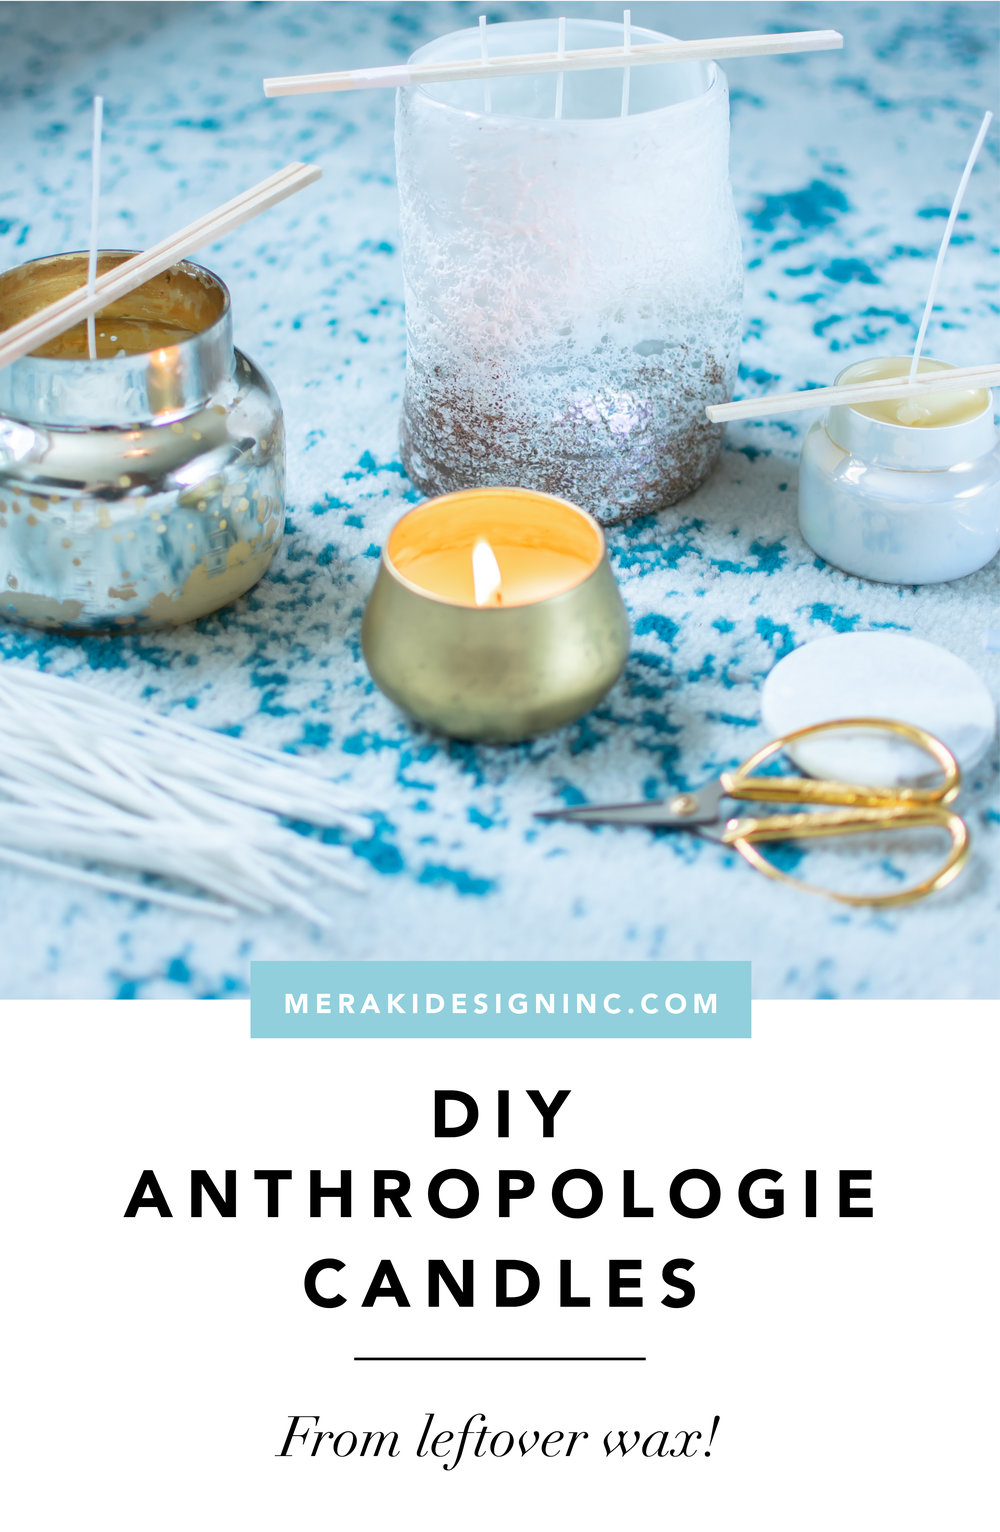 DIY Anthro Candles from Leftover Wax